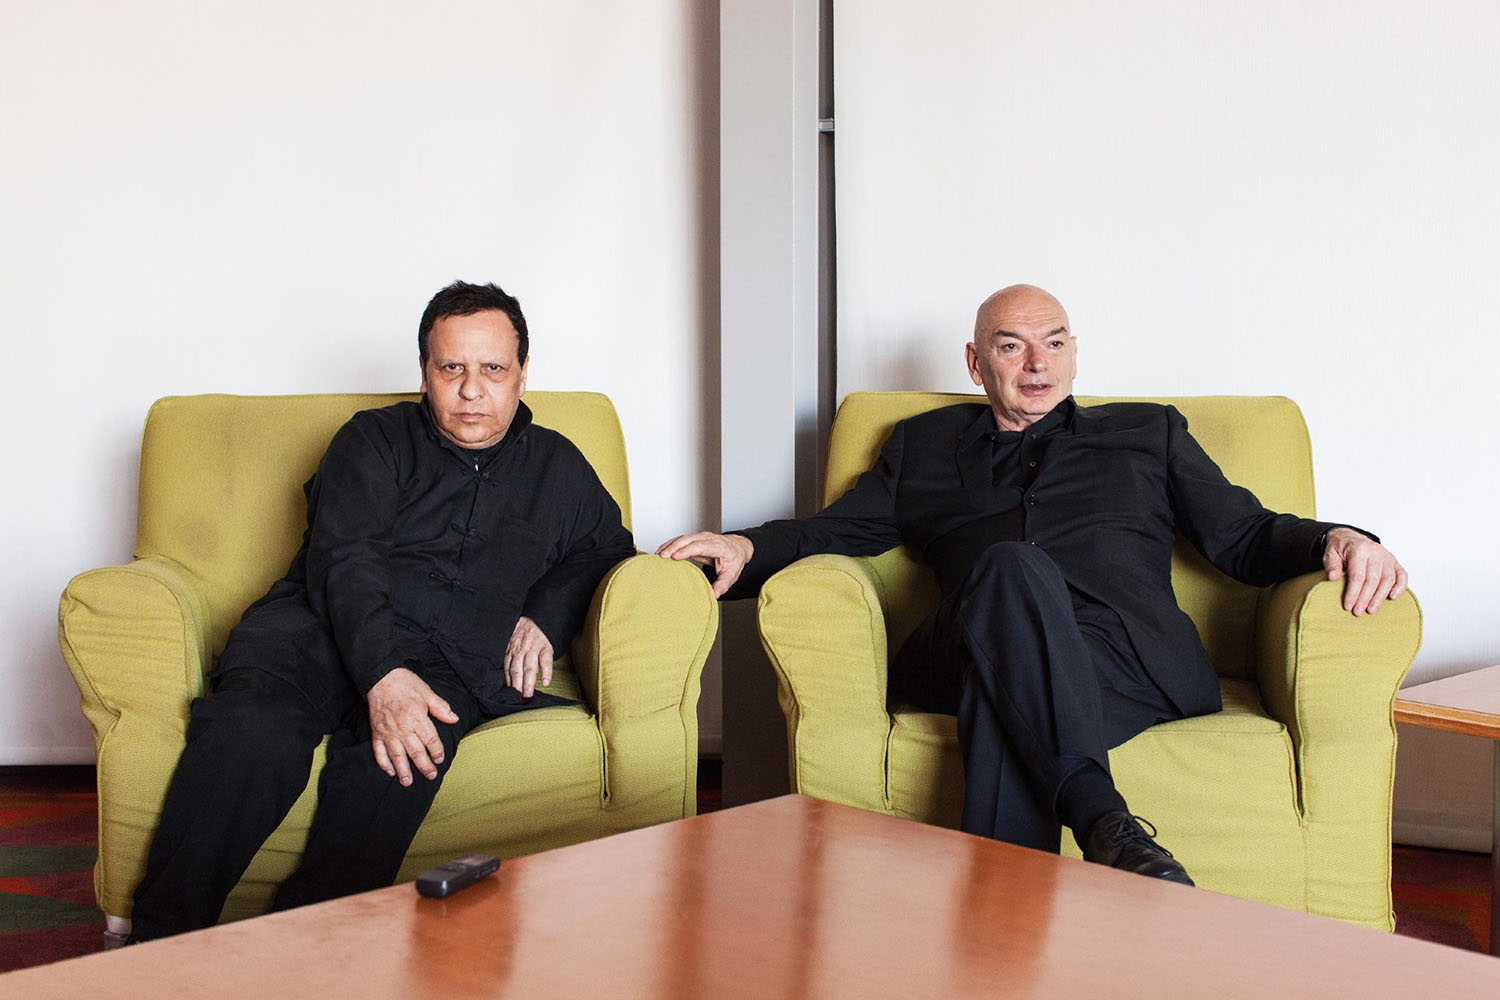 Azzedine Alaia, Designer & Jean Nouvel, Architect, Los Angeles, California, 2013